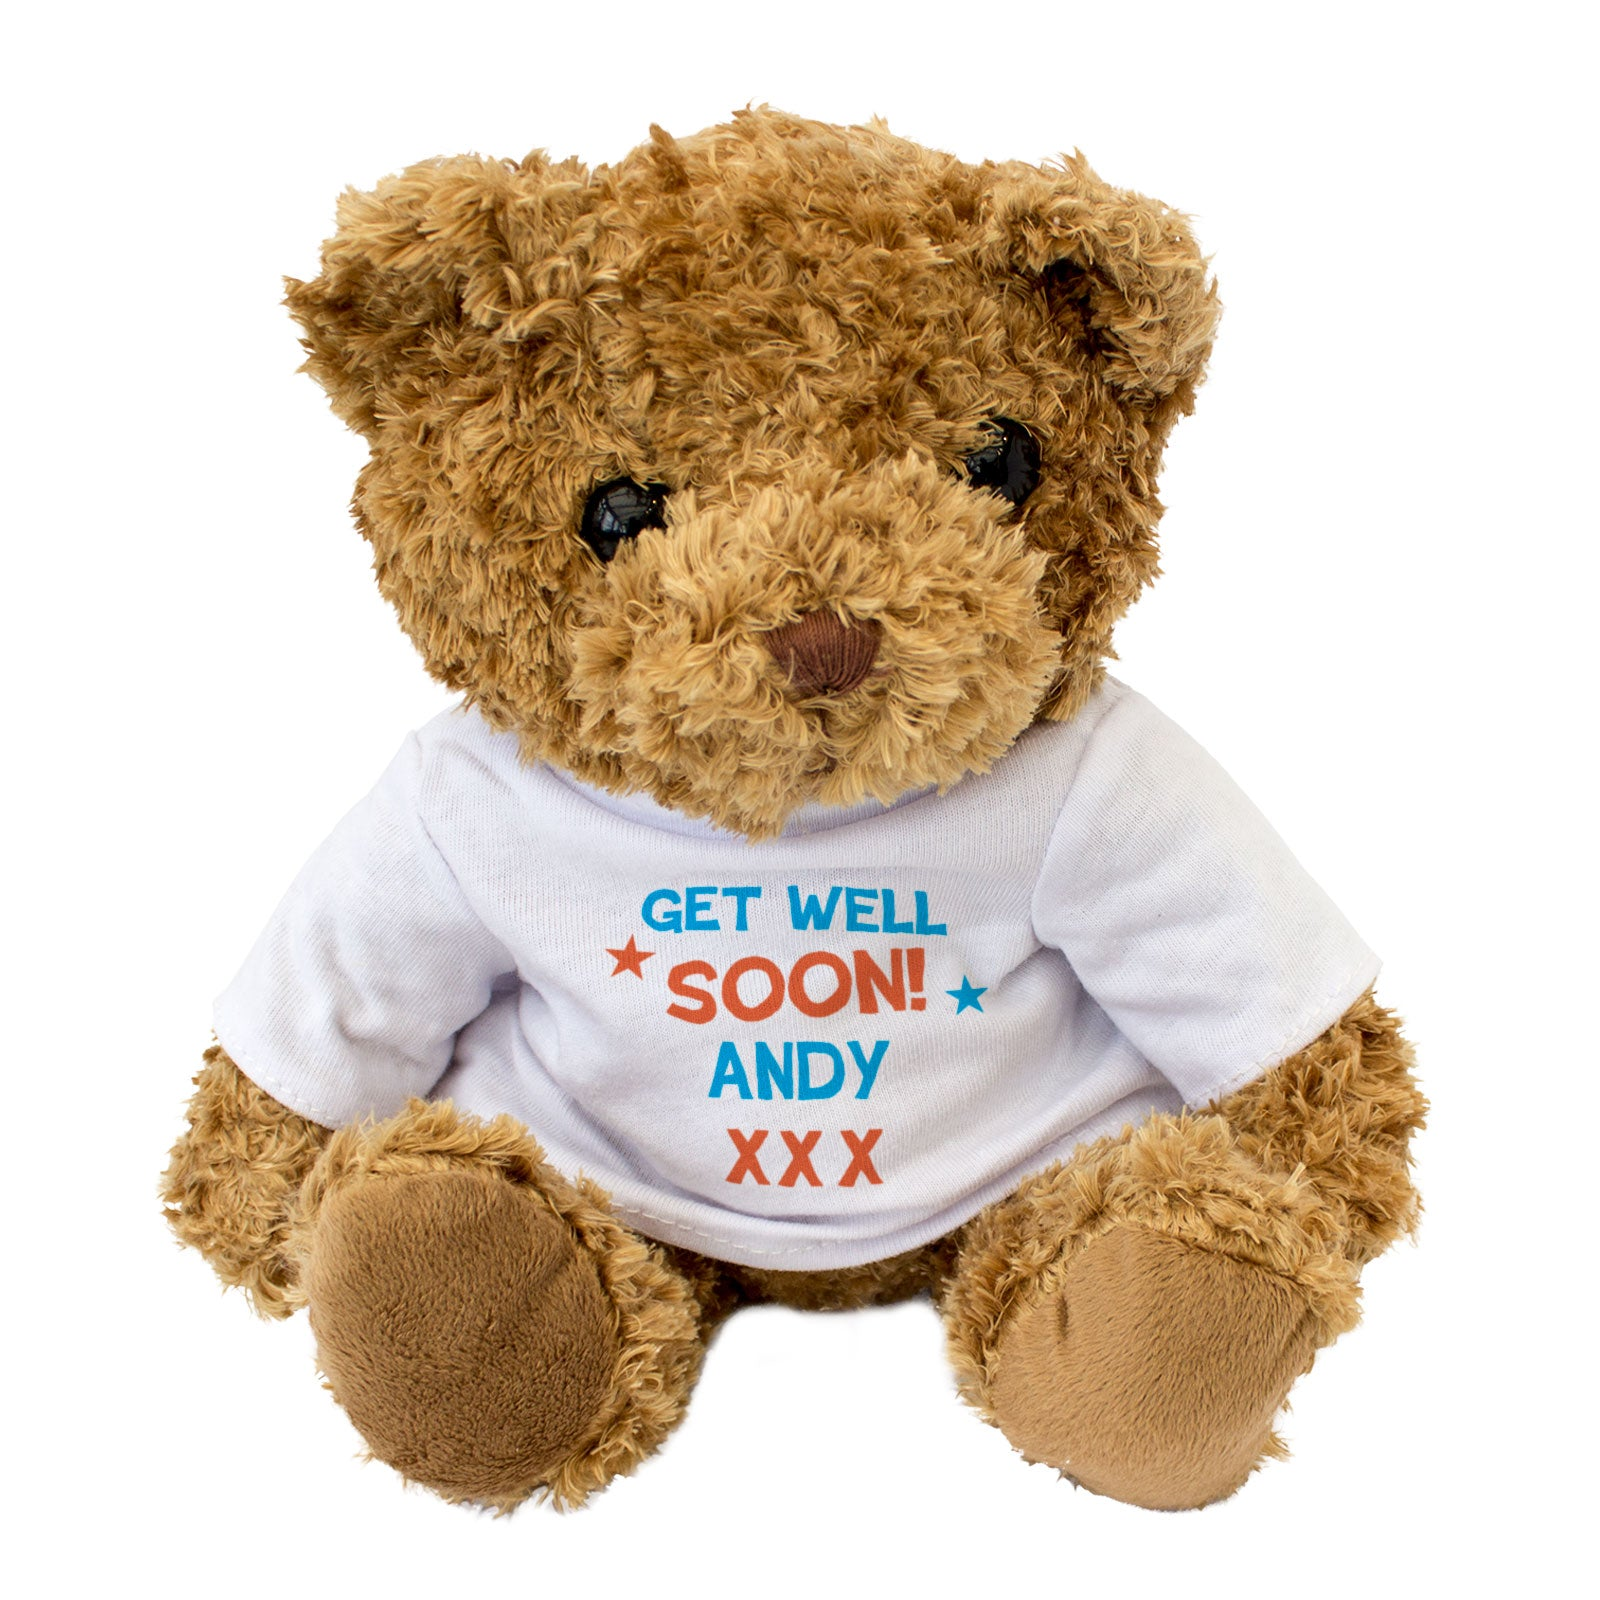 Get Well Soon Andy - Teddy Bear